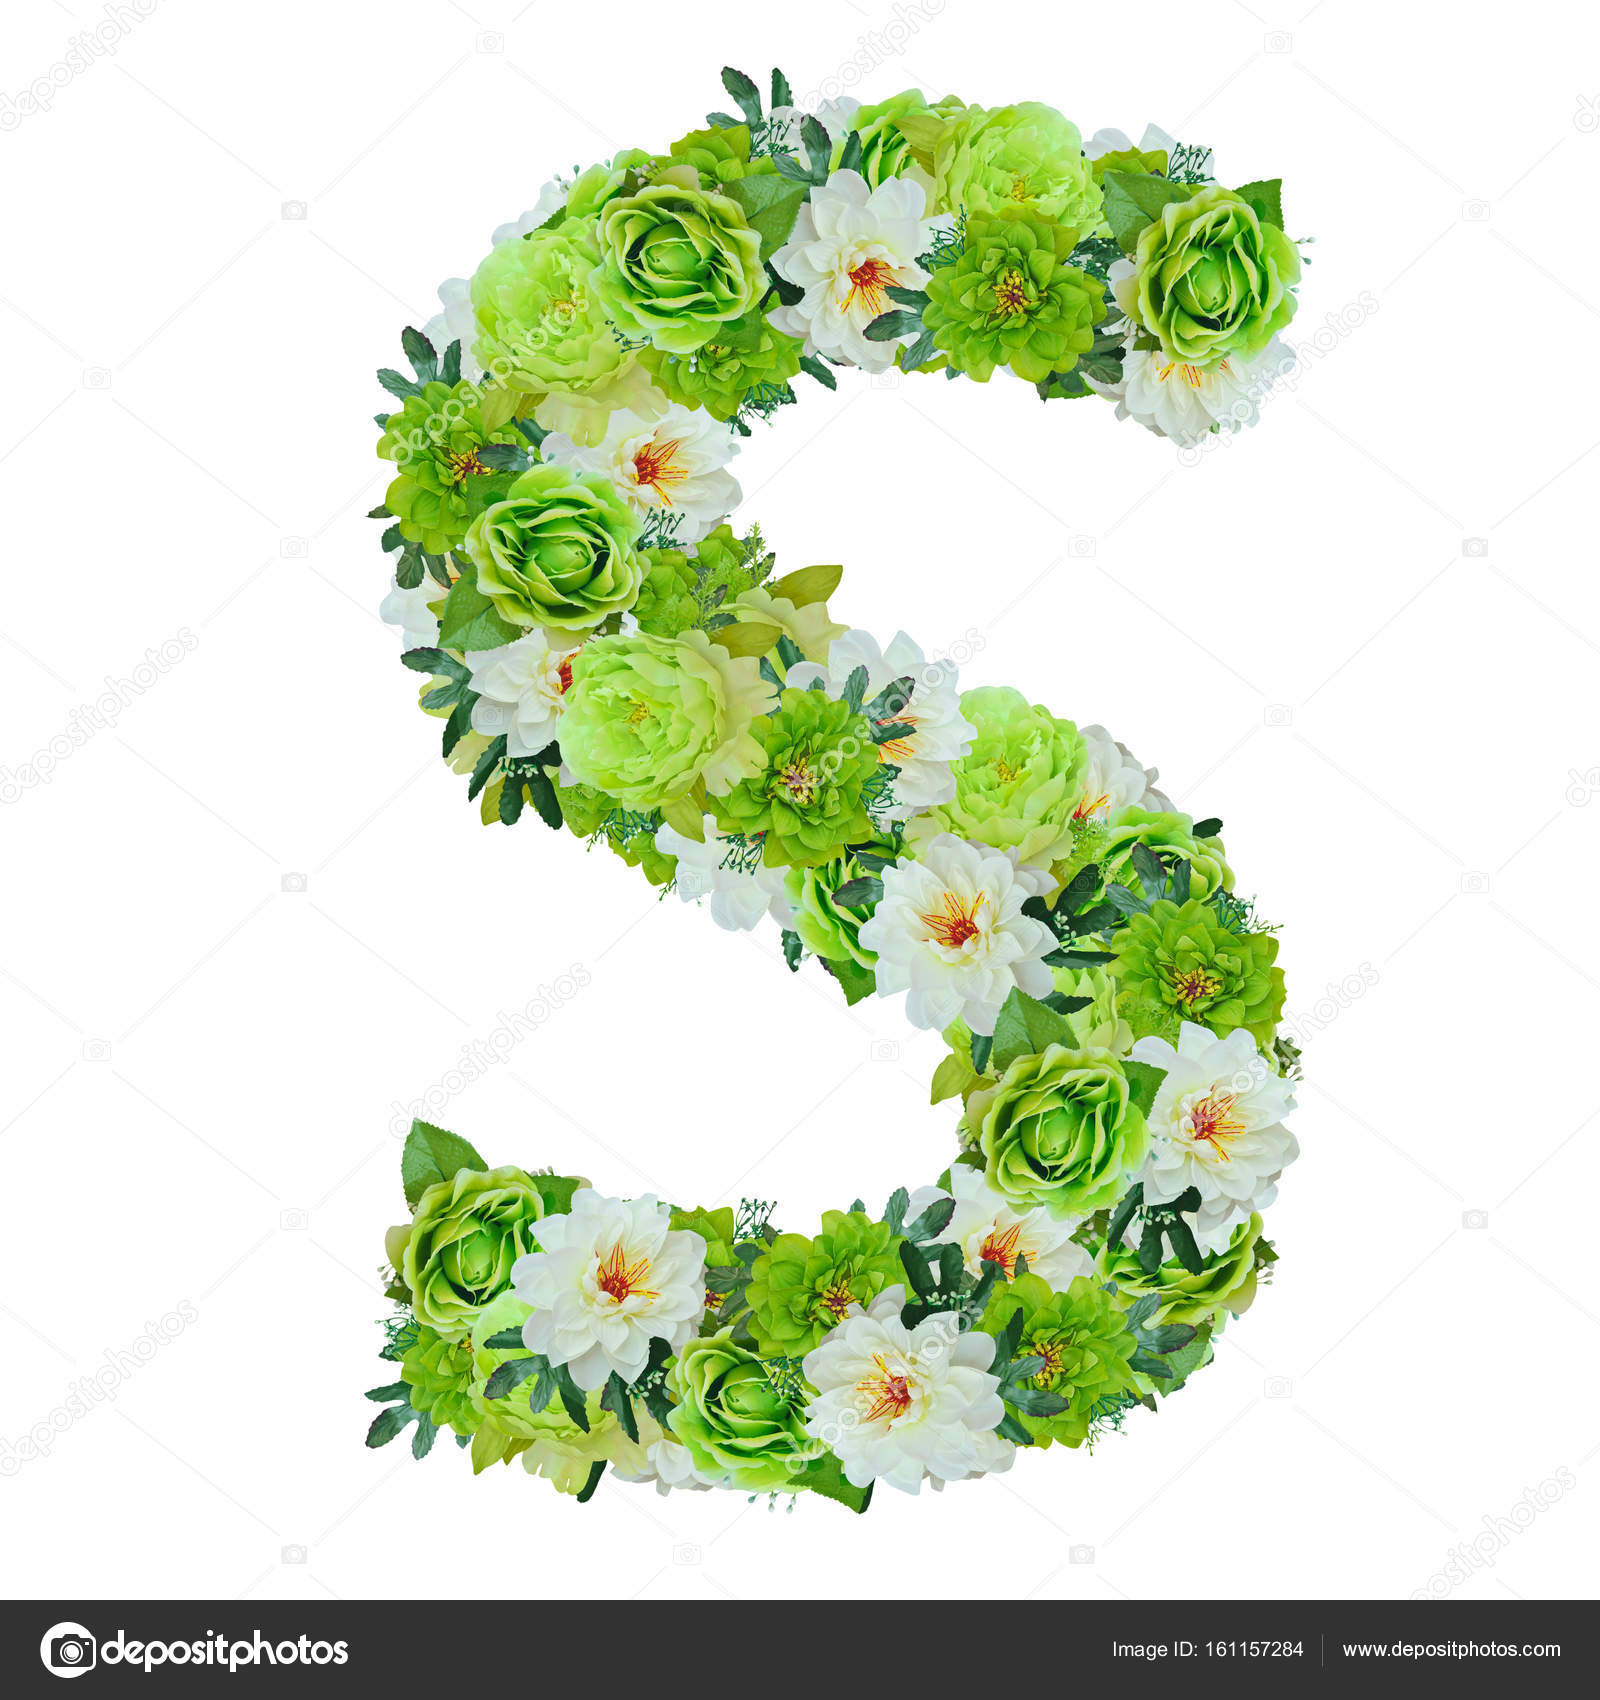 Fiori Con La S.Letter S From Green And White Flowers Isolated On White With Wor